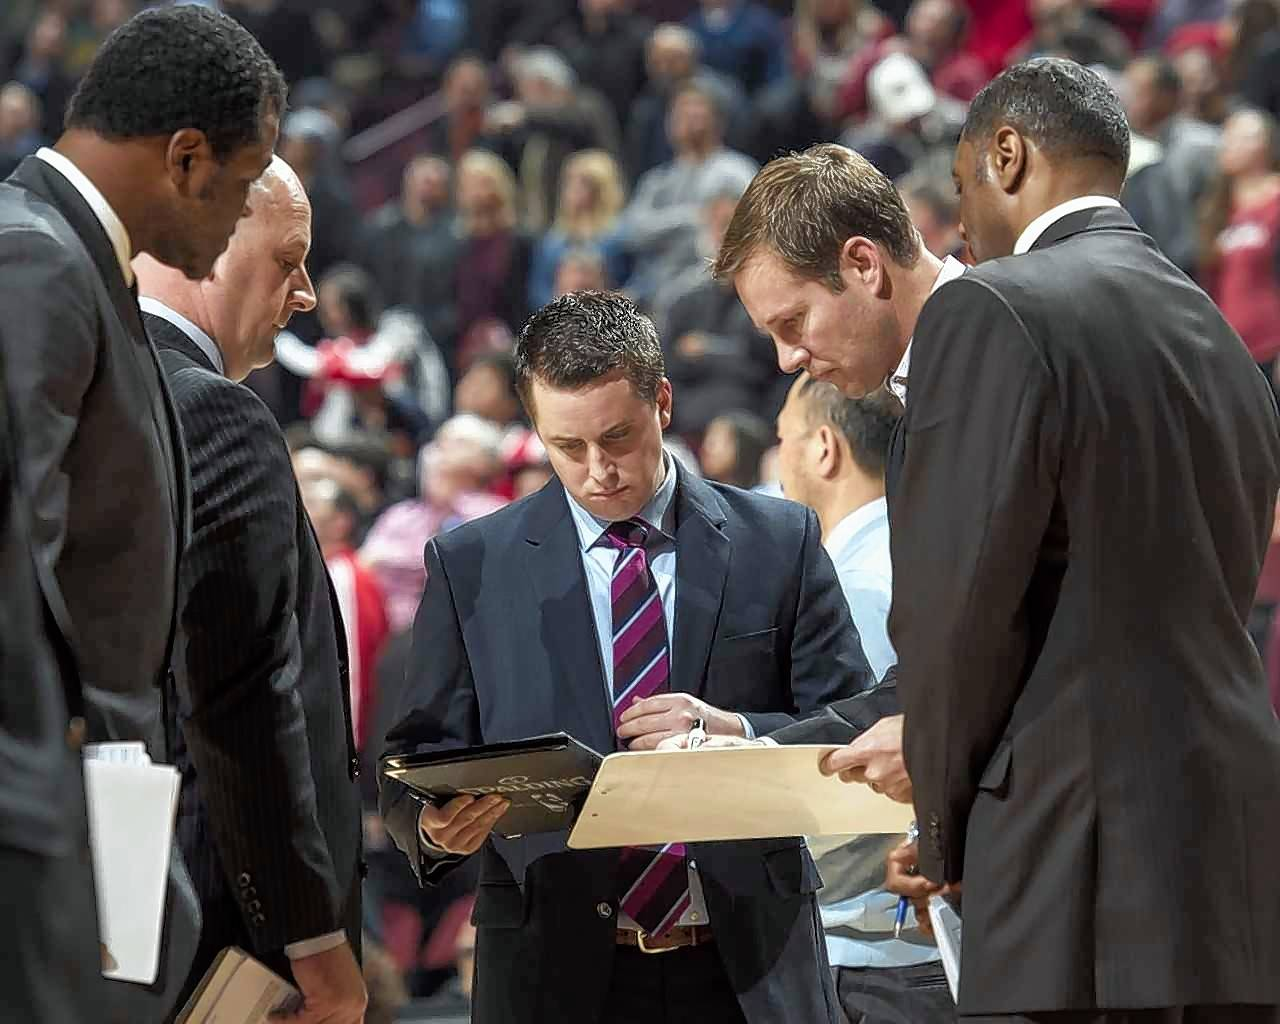 Charlie Henry made a quick rise through the basketball ranks, following coach Fred Hoiberg to the Bulls from Iowa State in 2015. Now Henry is the new head coach of the Windy City Bulls and talked about his new role in a Q&A.